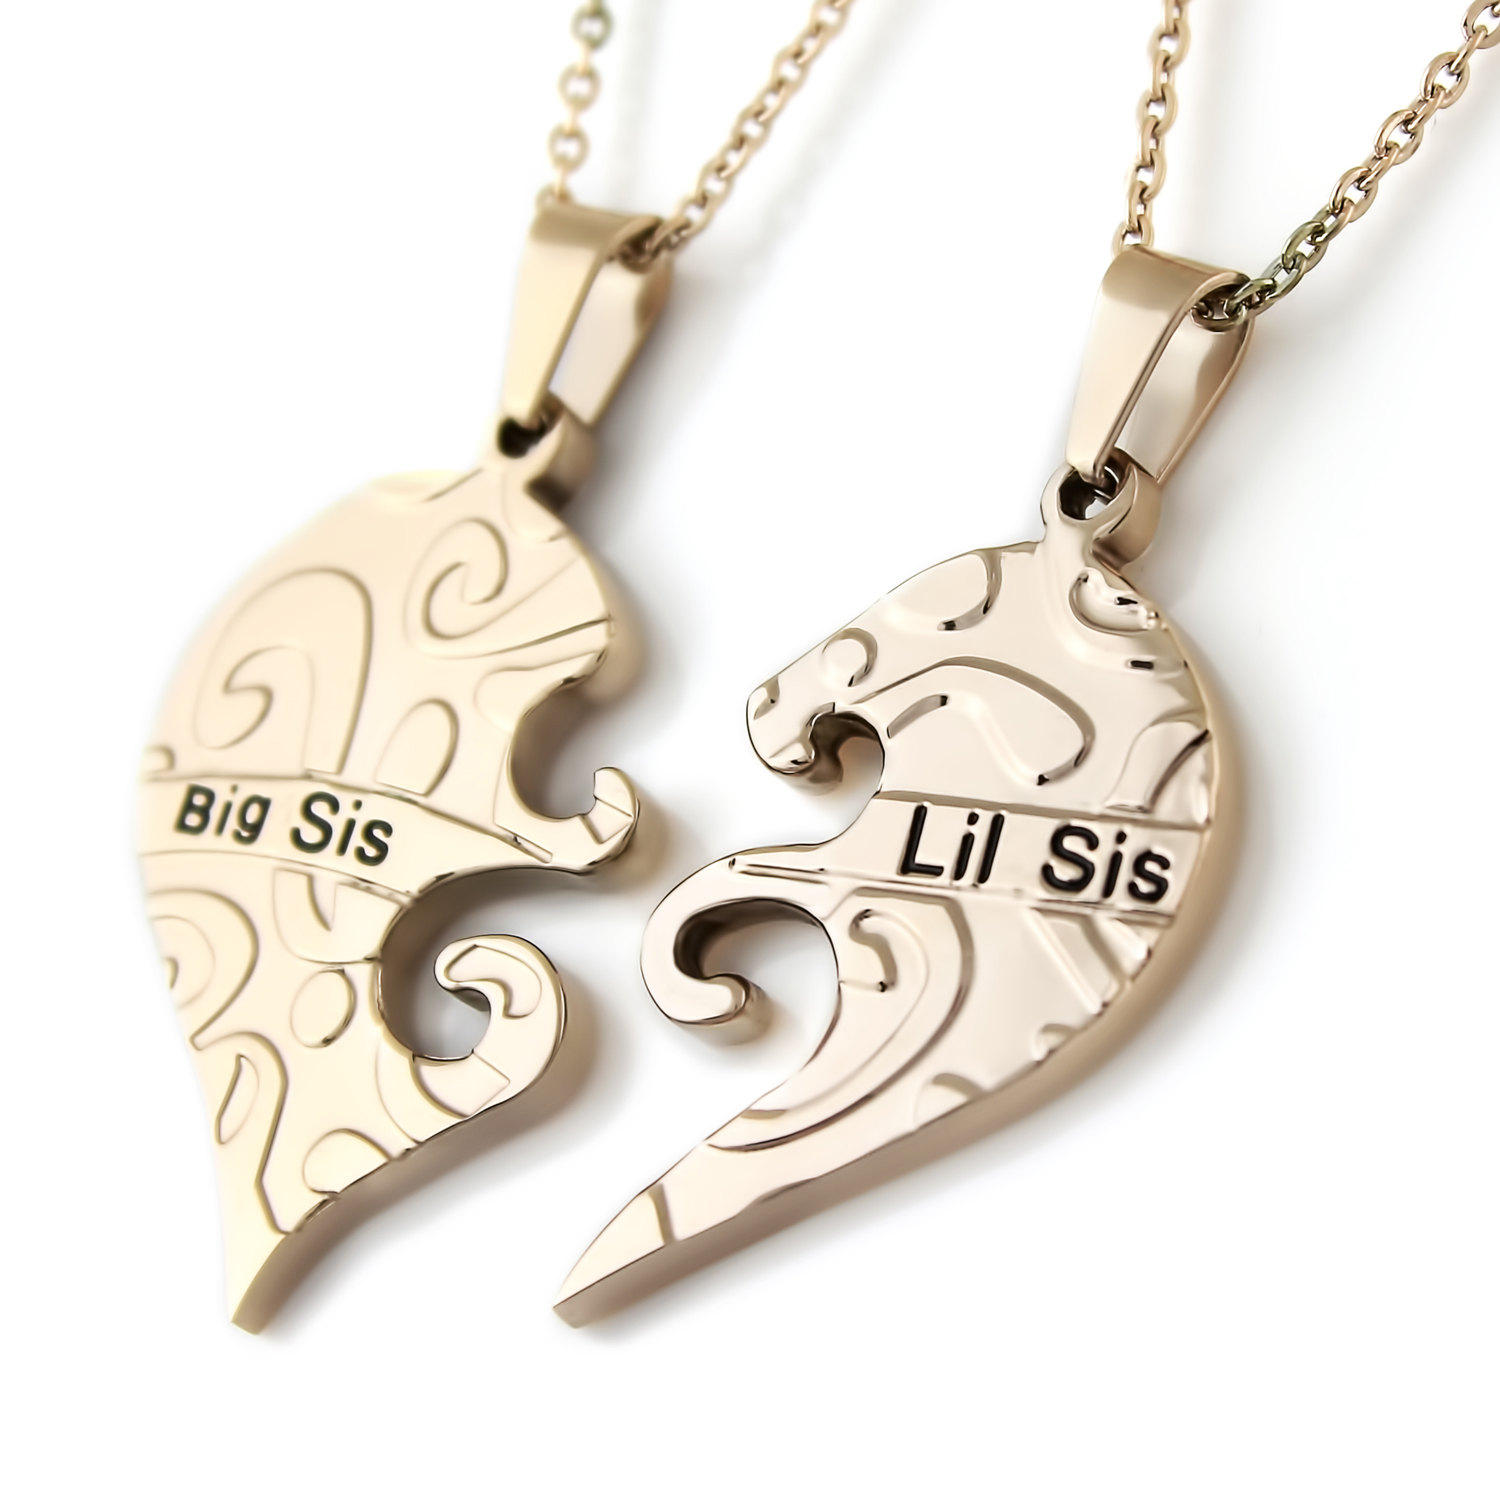 Tzaro Jewelry Big Sister Little Sister Necklace Infinity